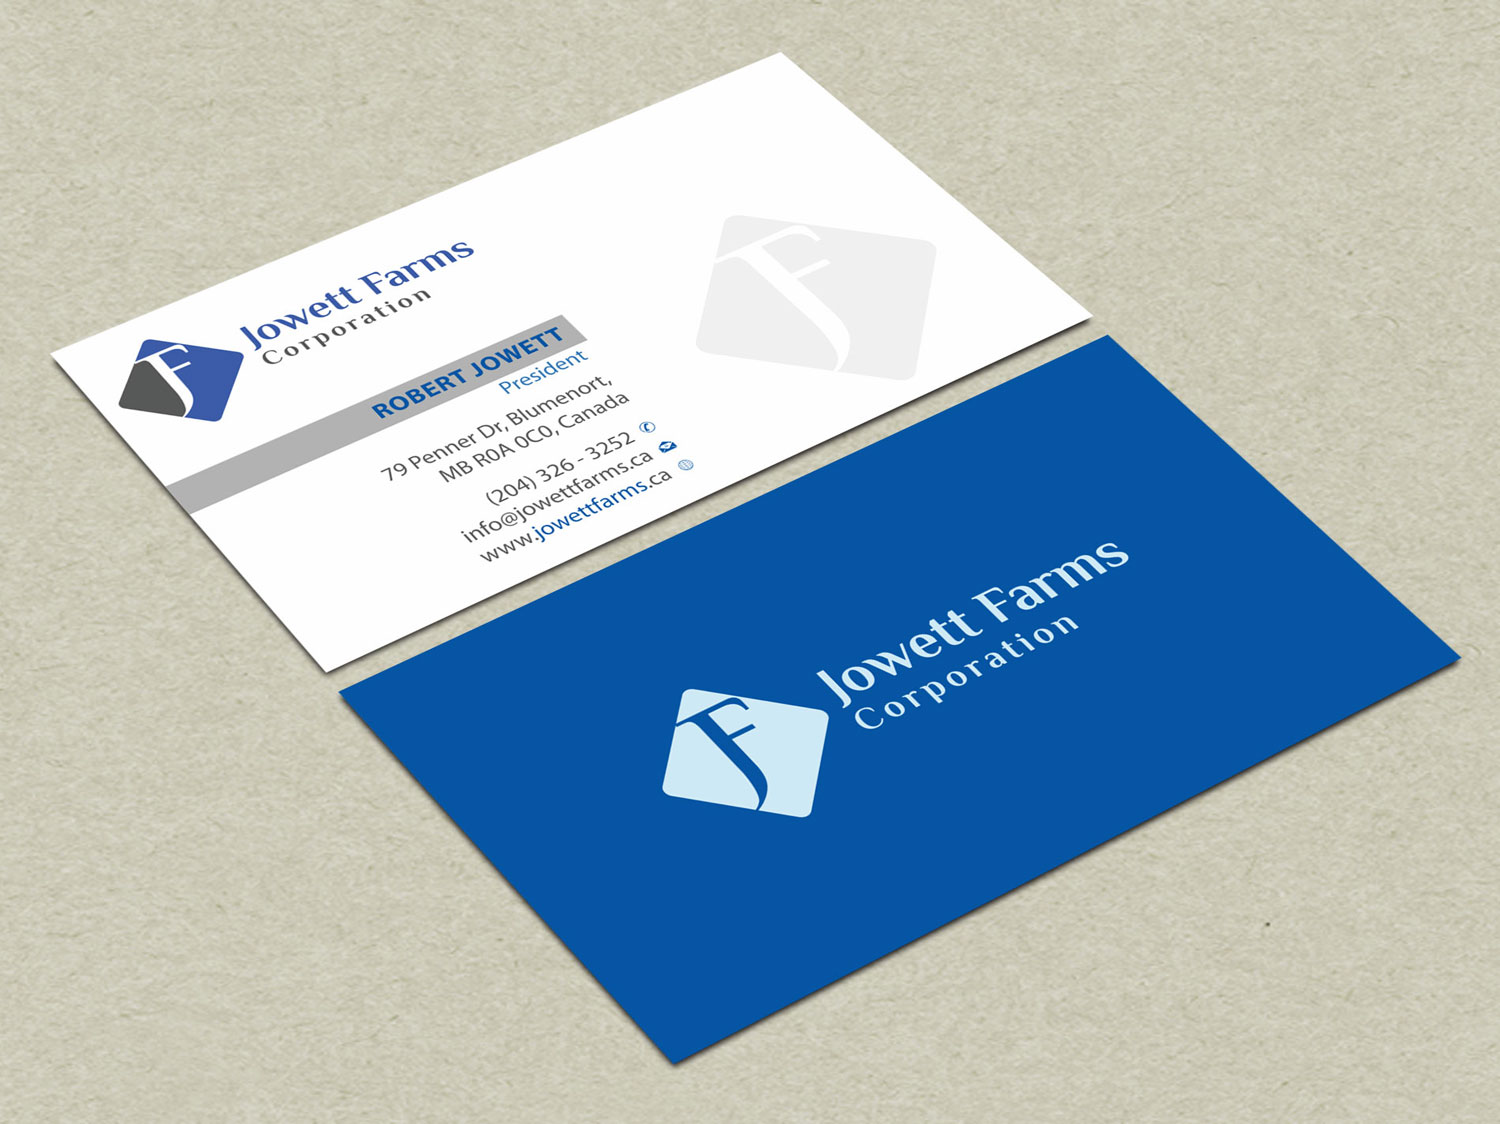 Professional, Serious, Wholesale Business Card Design for Jowett ...